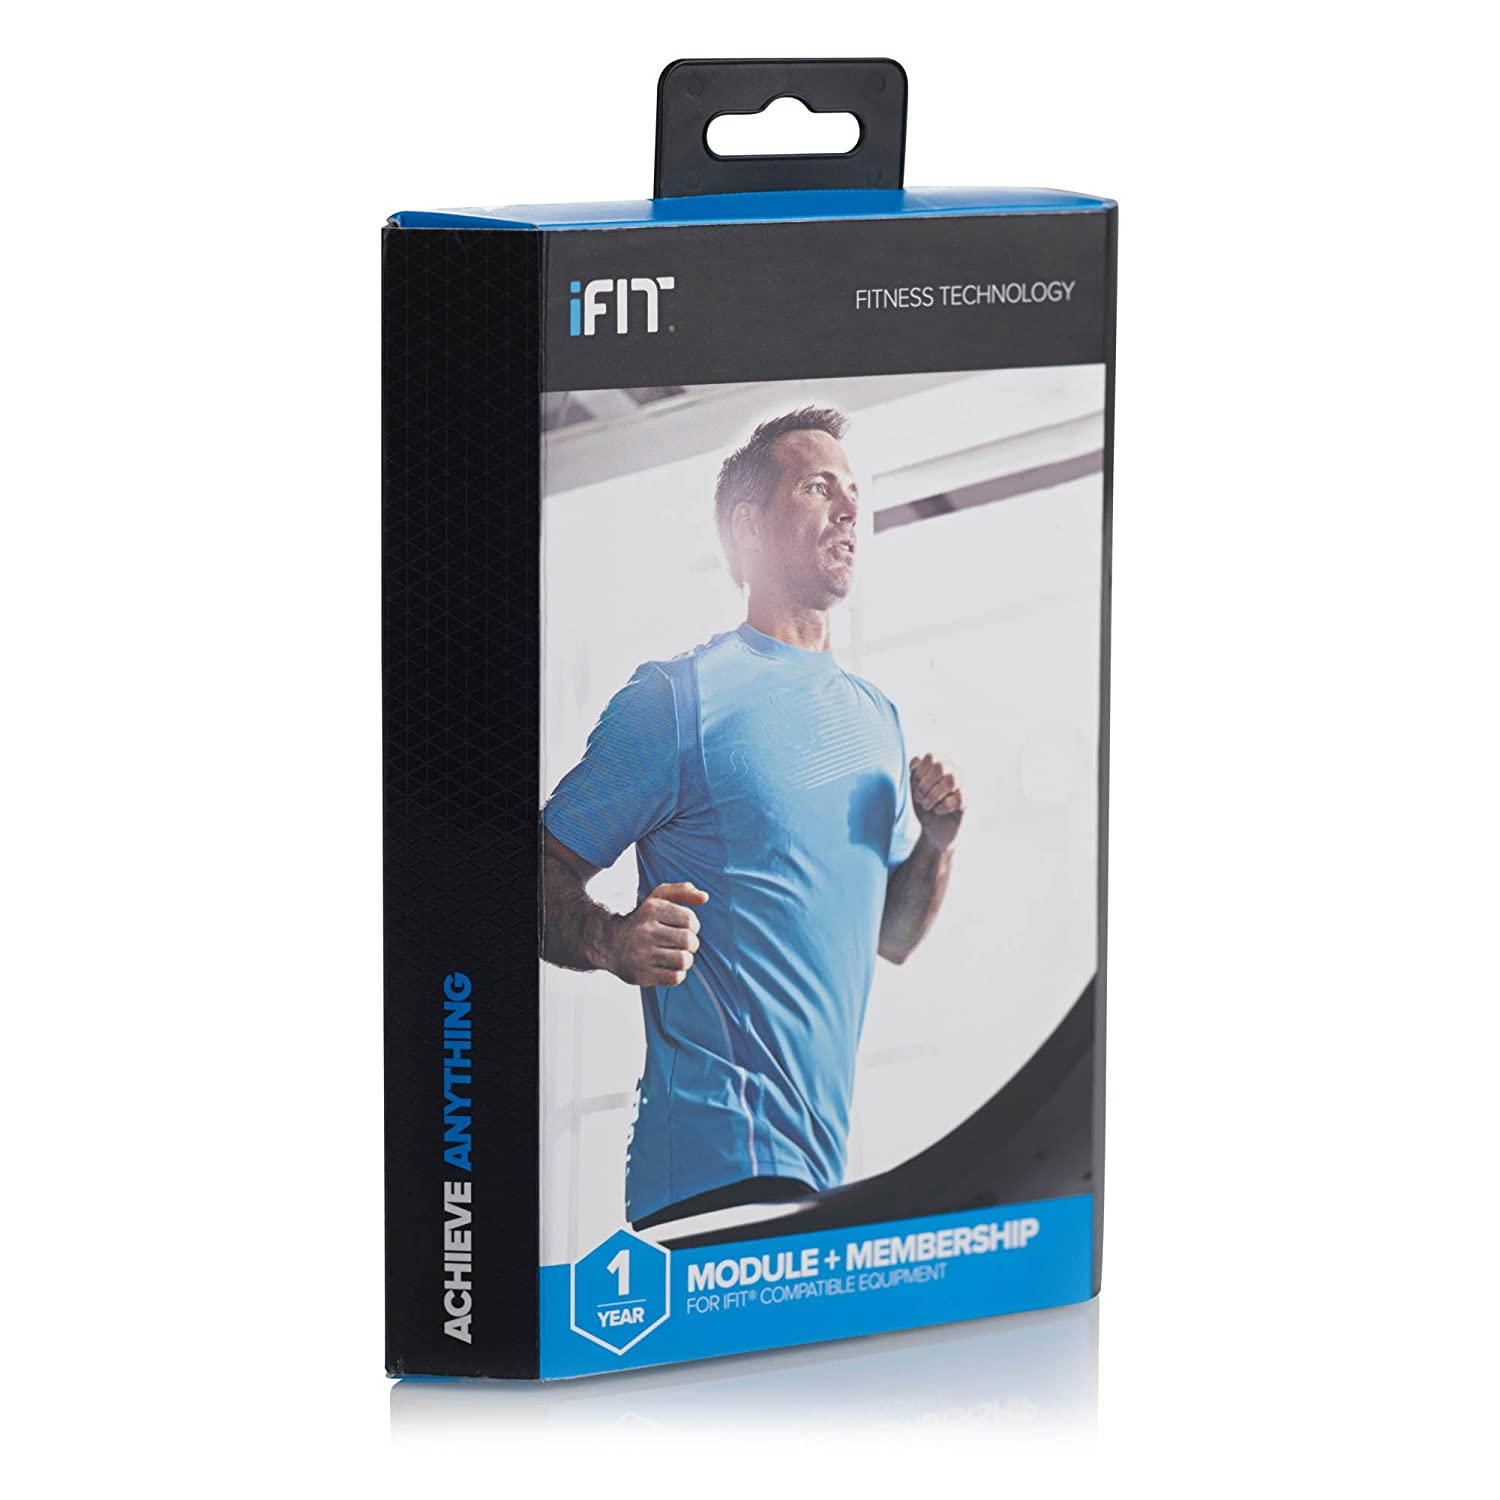 iFit Wifi Module w/ 1 Year iFit Membership (Model: EXIF12)